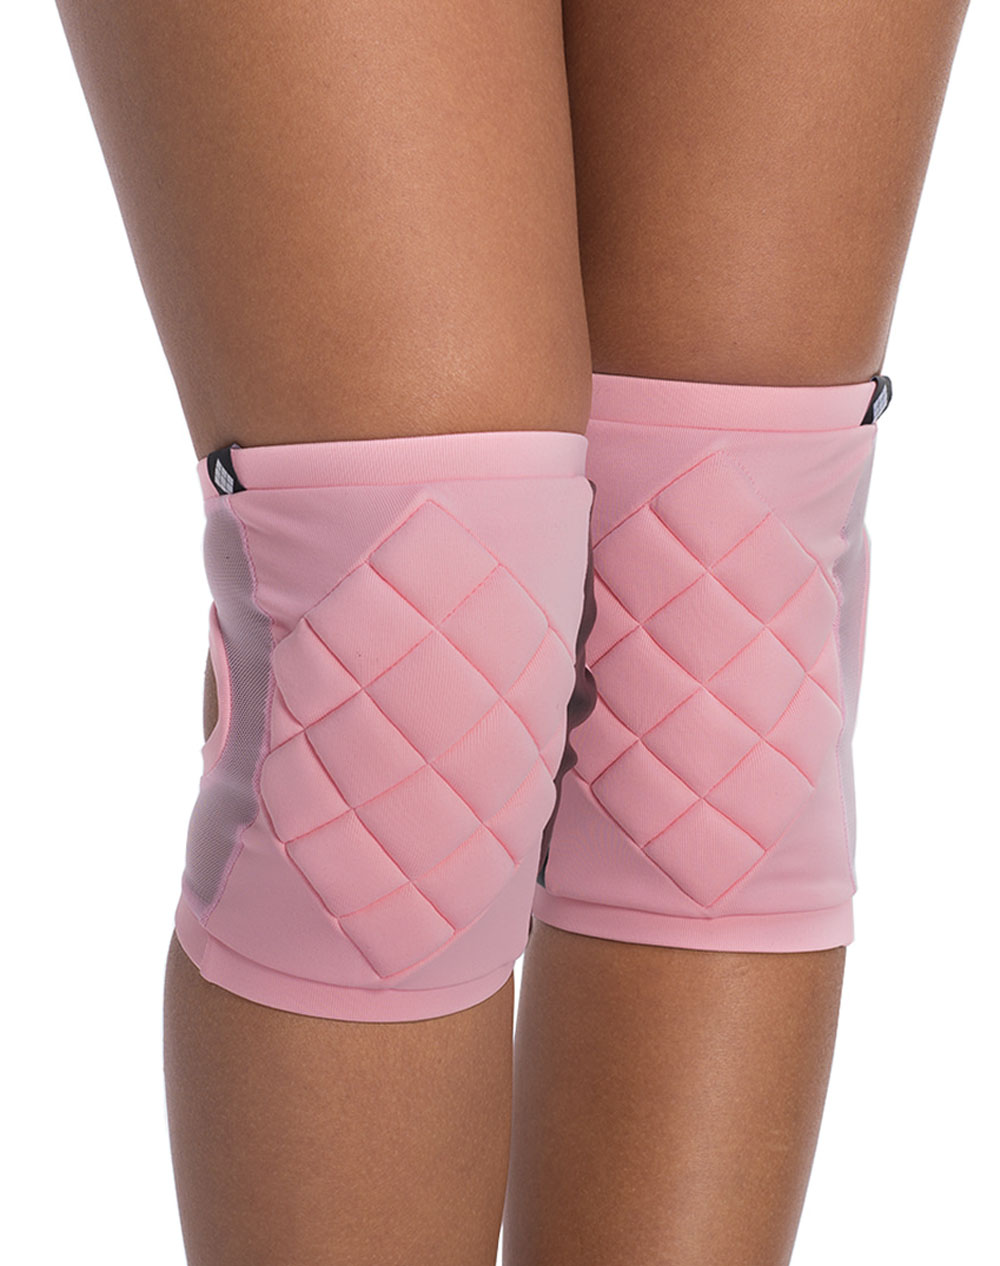 Knee Pads - Baby Pink